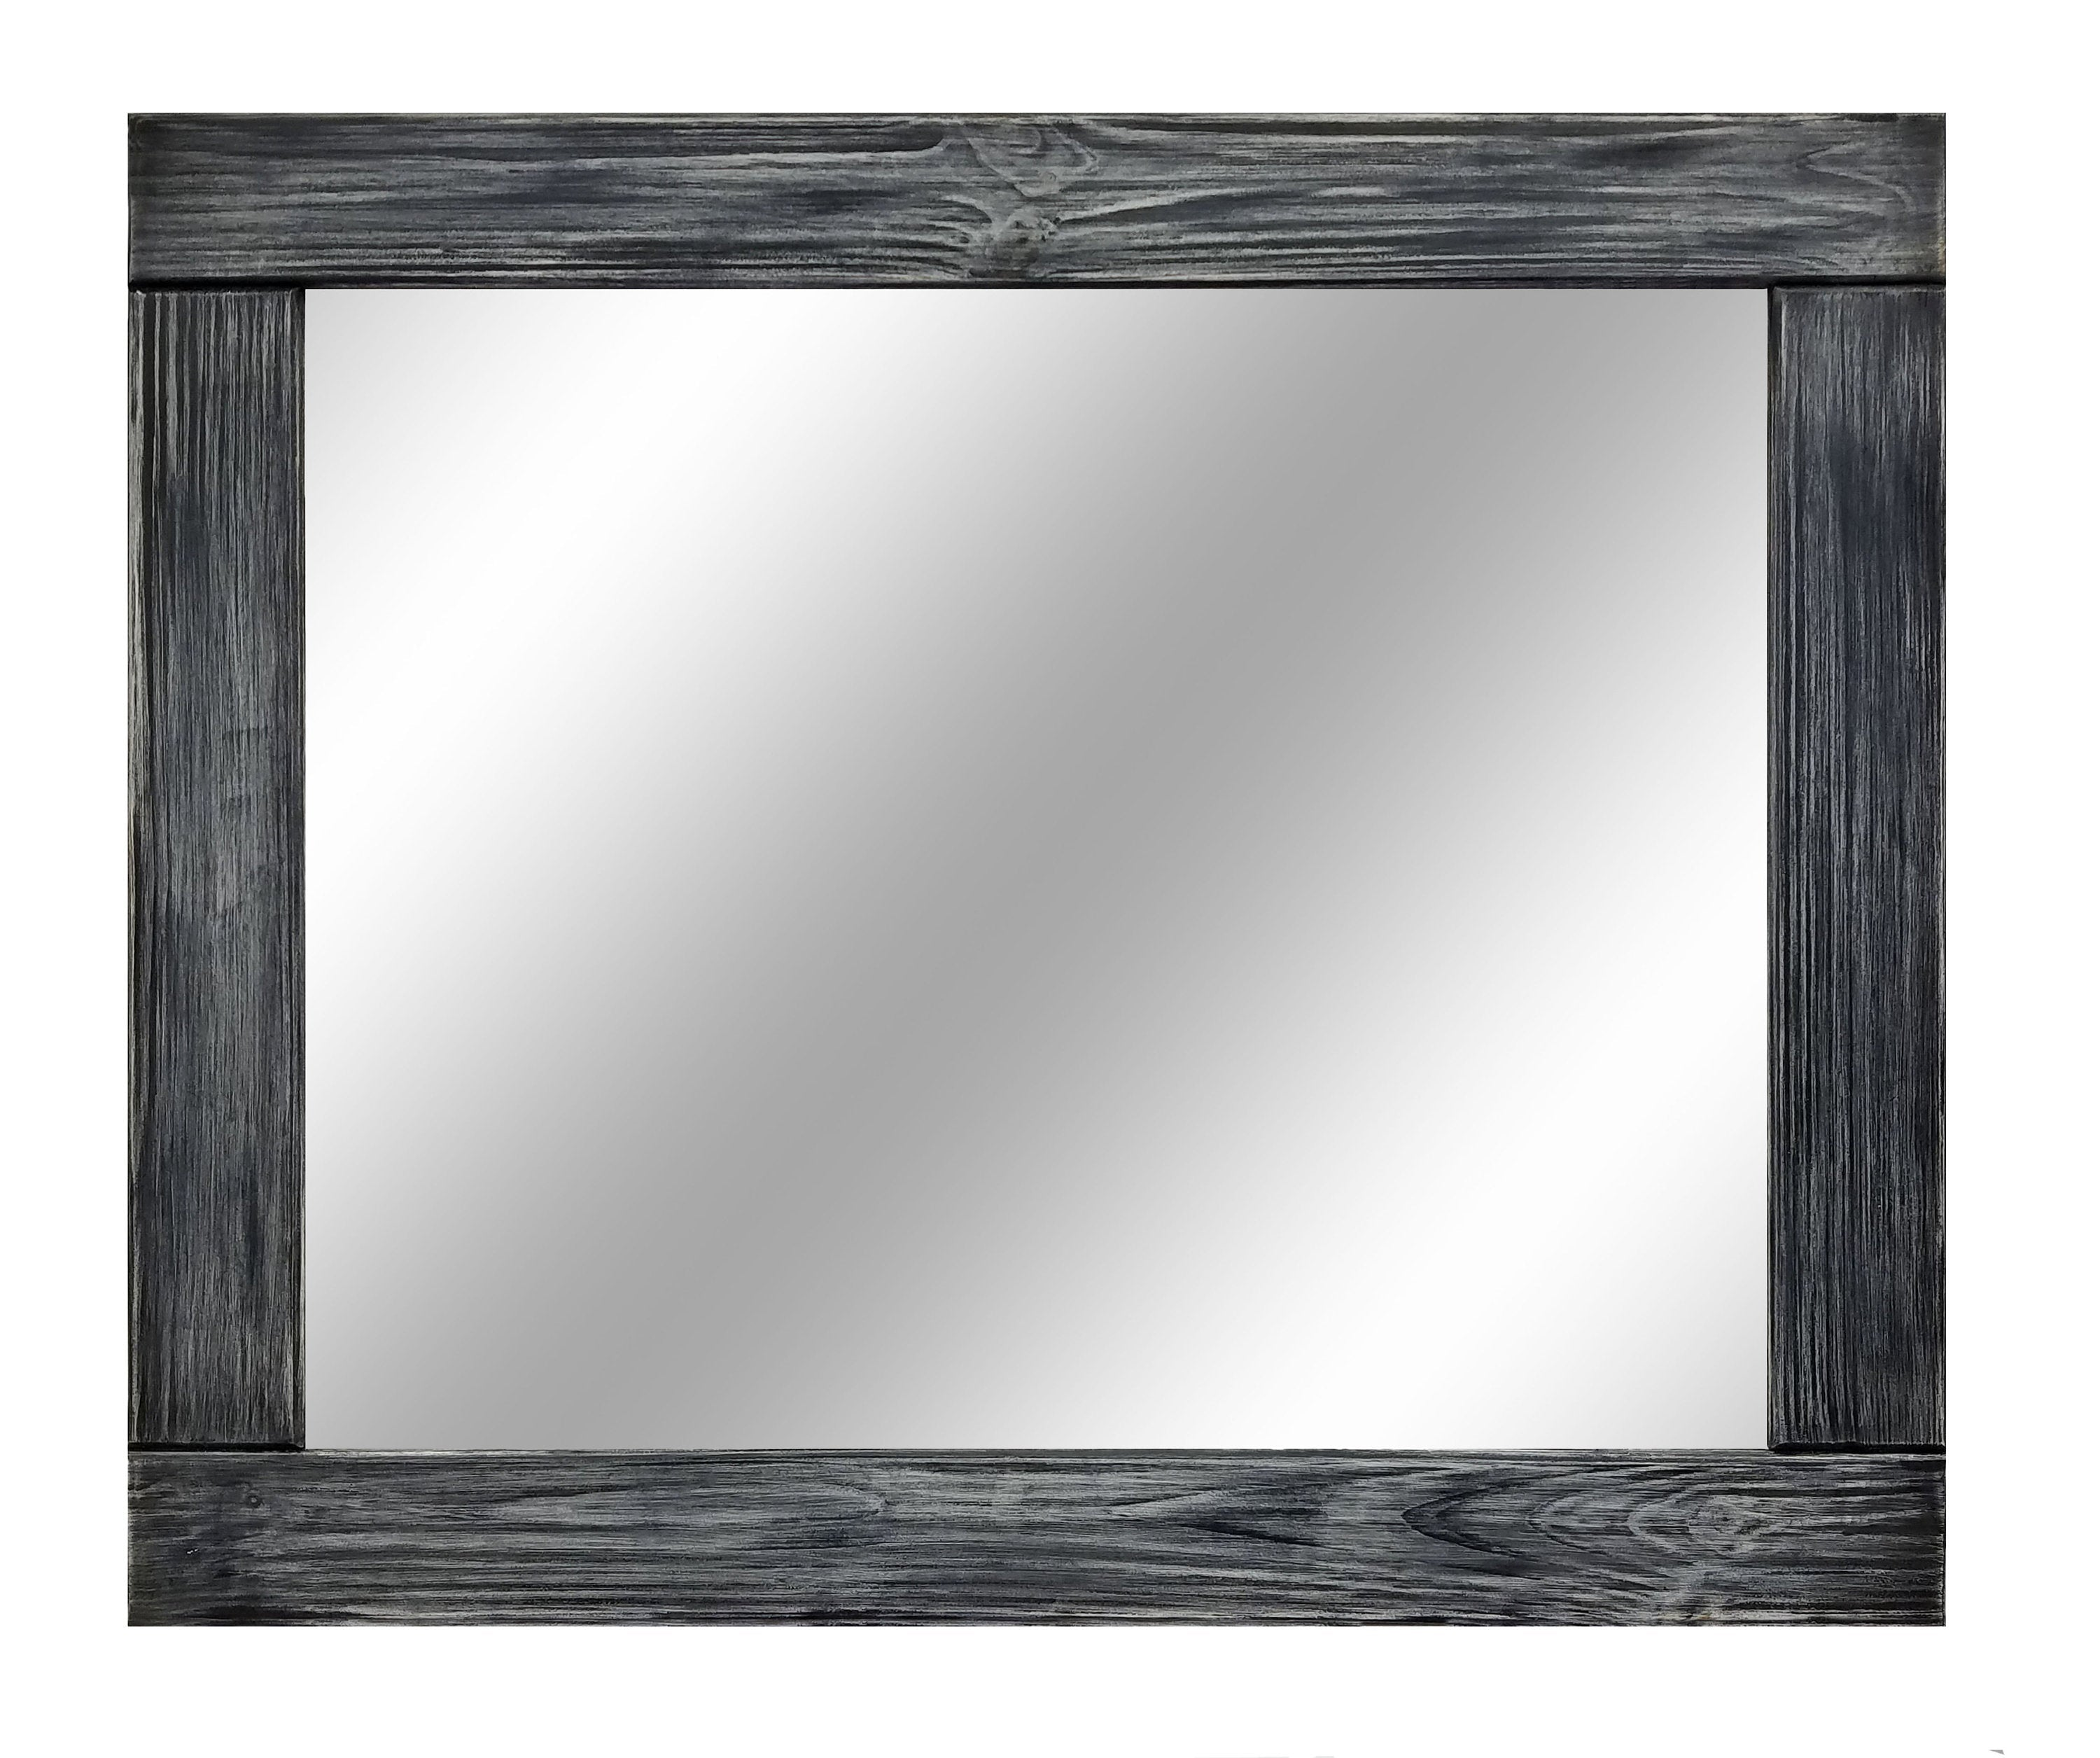 Natural Rustic Wall Mirror, Vanity Mirror, Vintage Mirror, Wood Mirror, Bathroom Mirror, Farmhouse Wall Decor, Nursery Decor, Kitchen Decor - Renewed Decor & Storage